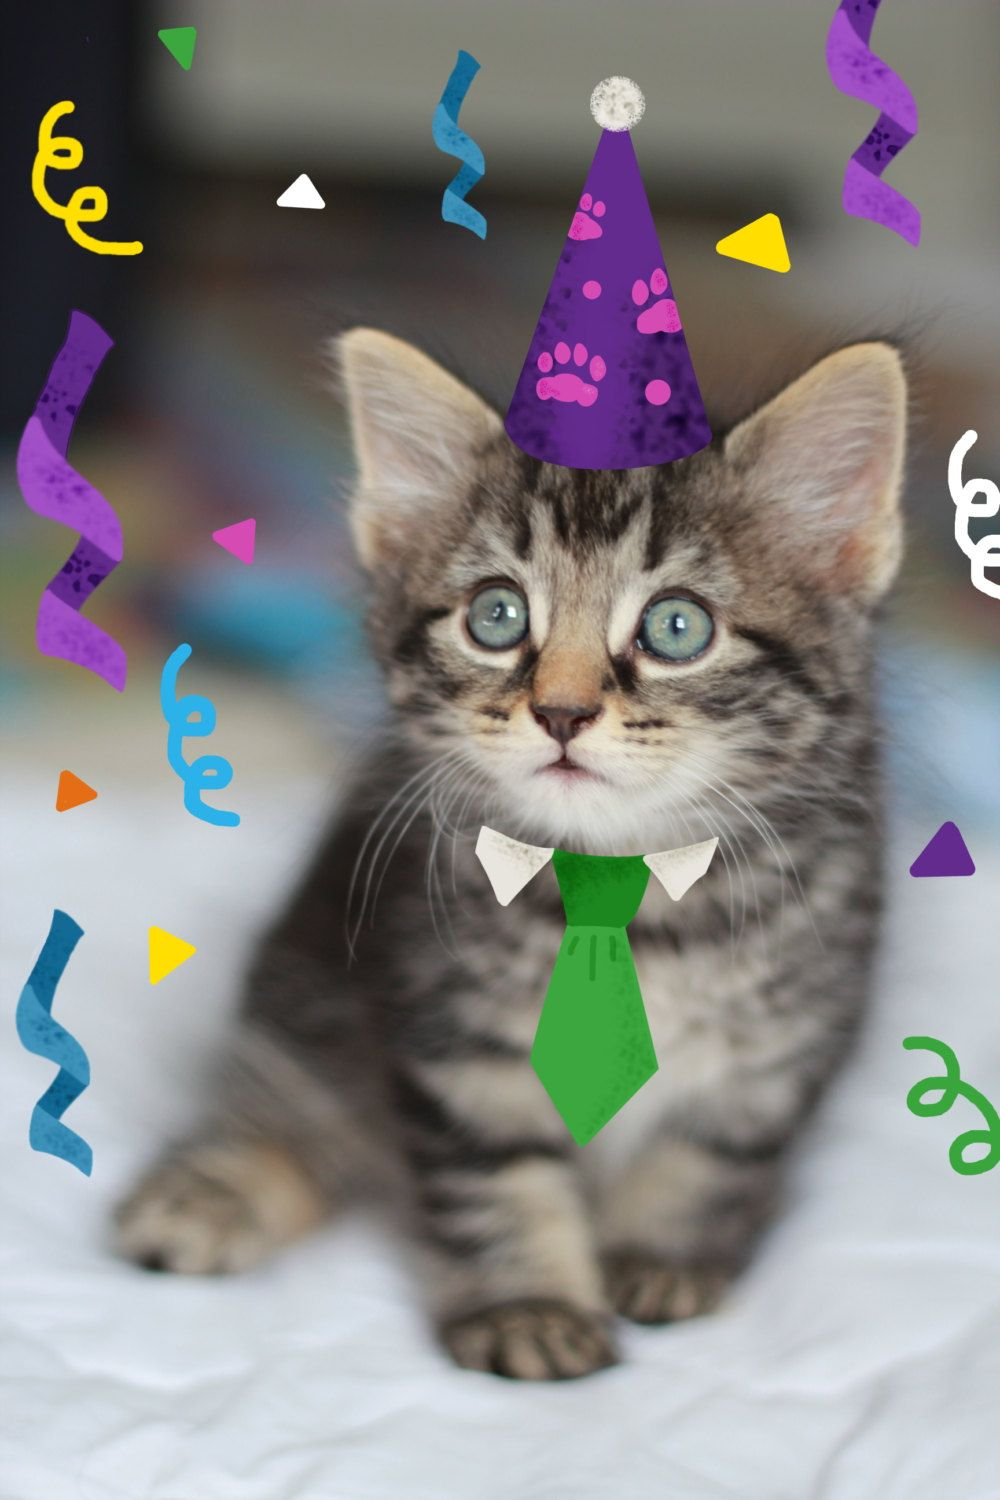 Dog Cat Happy Birthday Card Pack Of Four Funny Cute Card From Pet Pet Lover S Bi Happy Birthday Funny Cats Happy Birthday Cards Happy Birthday Pictures